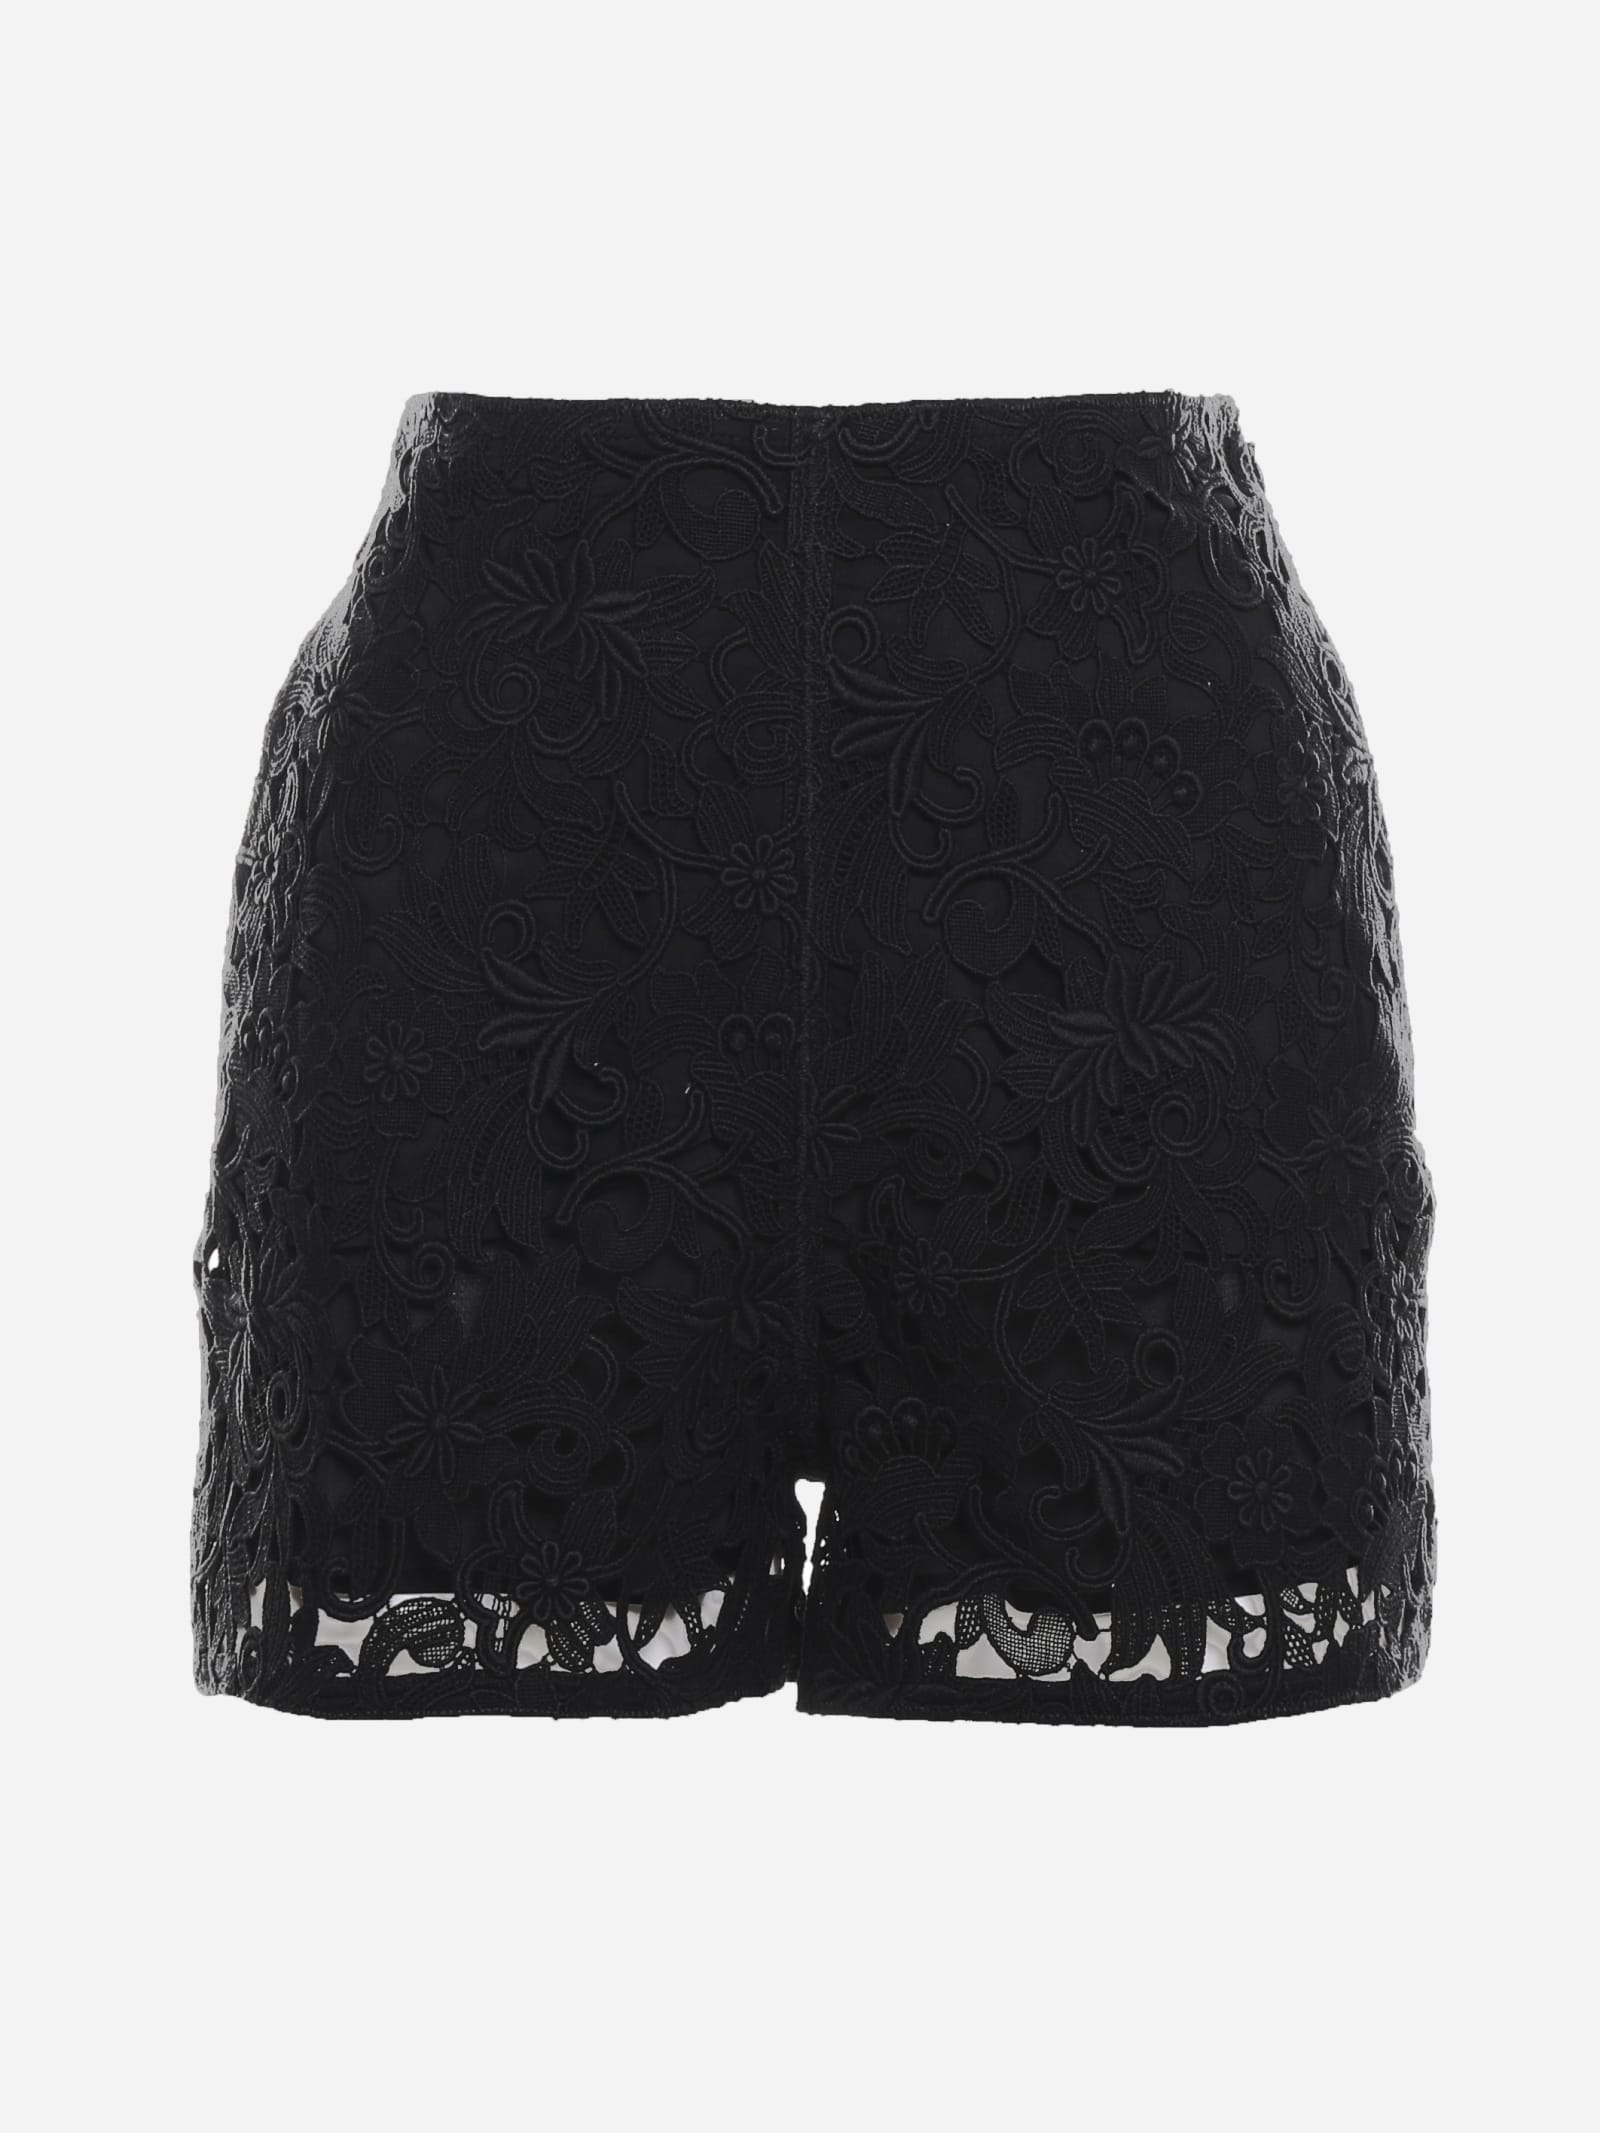 Valentino Clothing SHORTS MADE OF FLORAL LACE